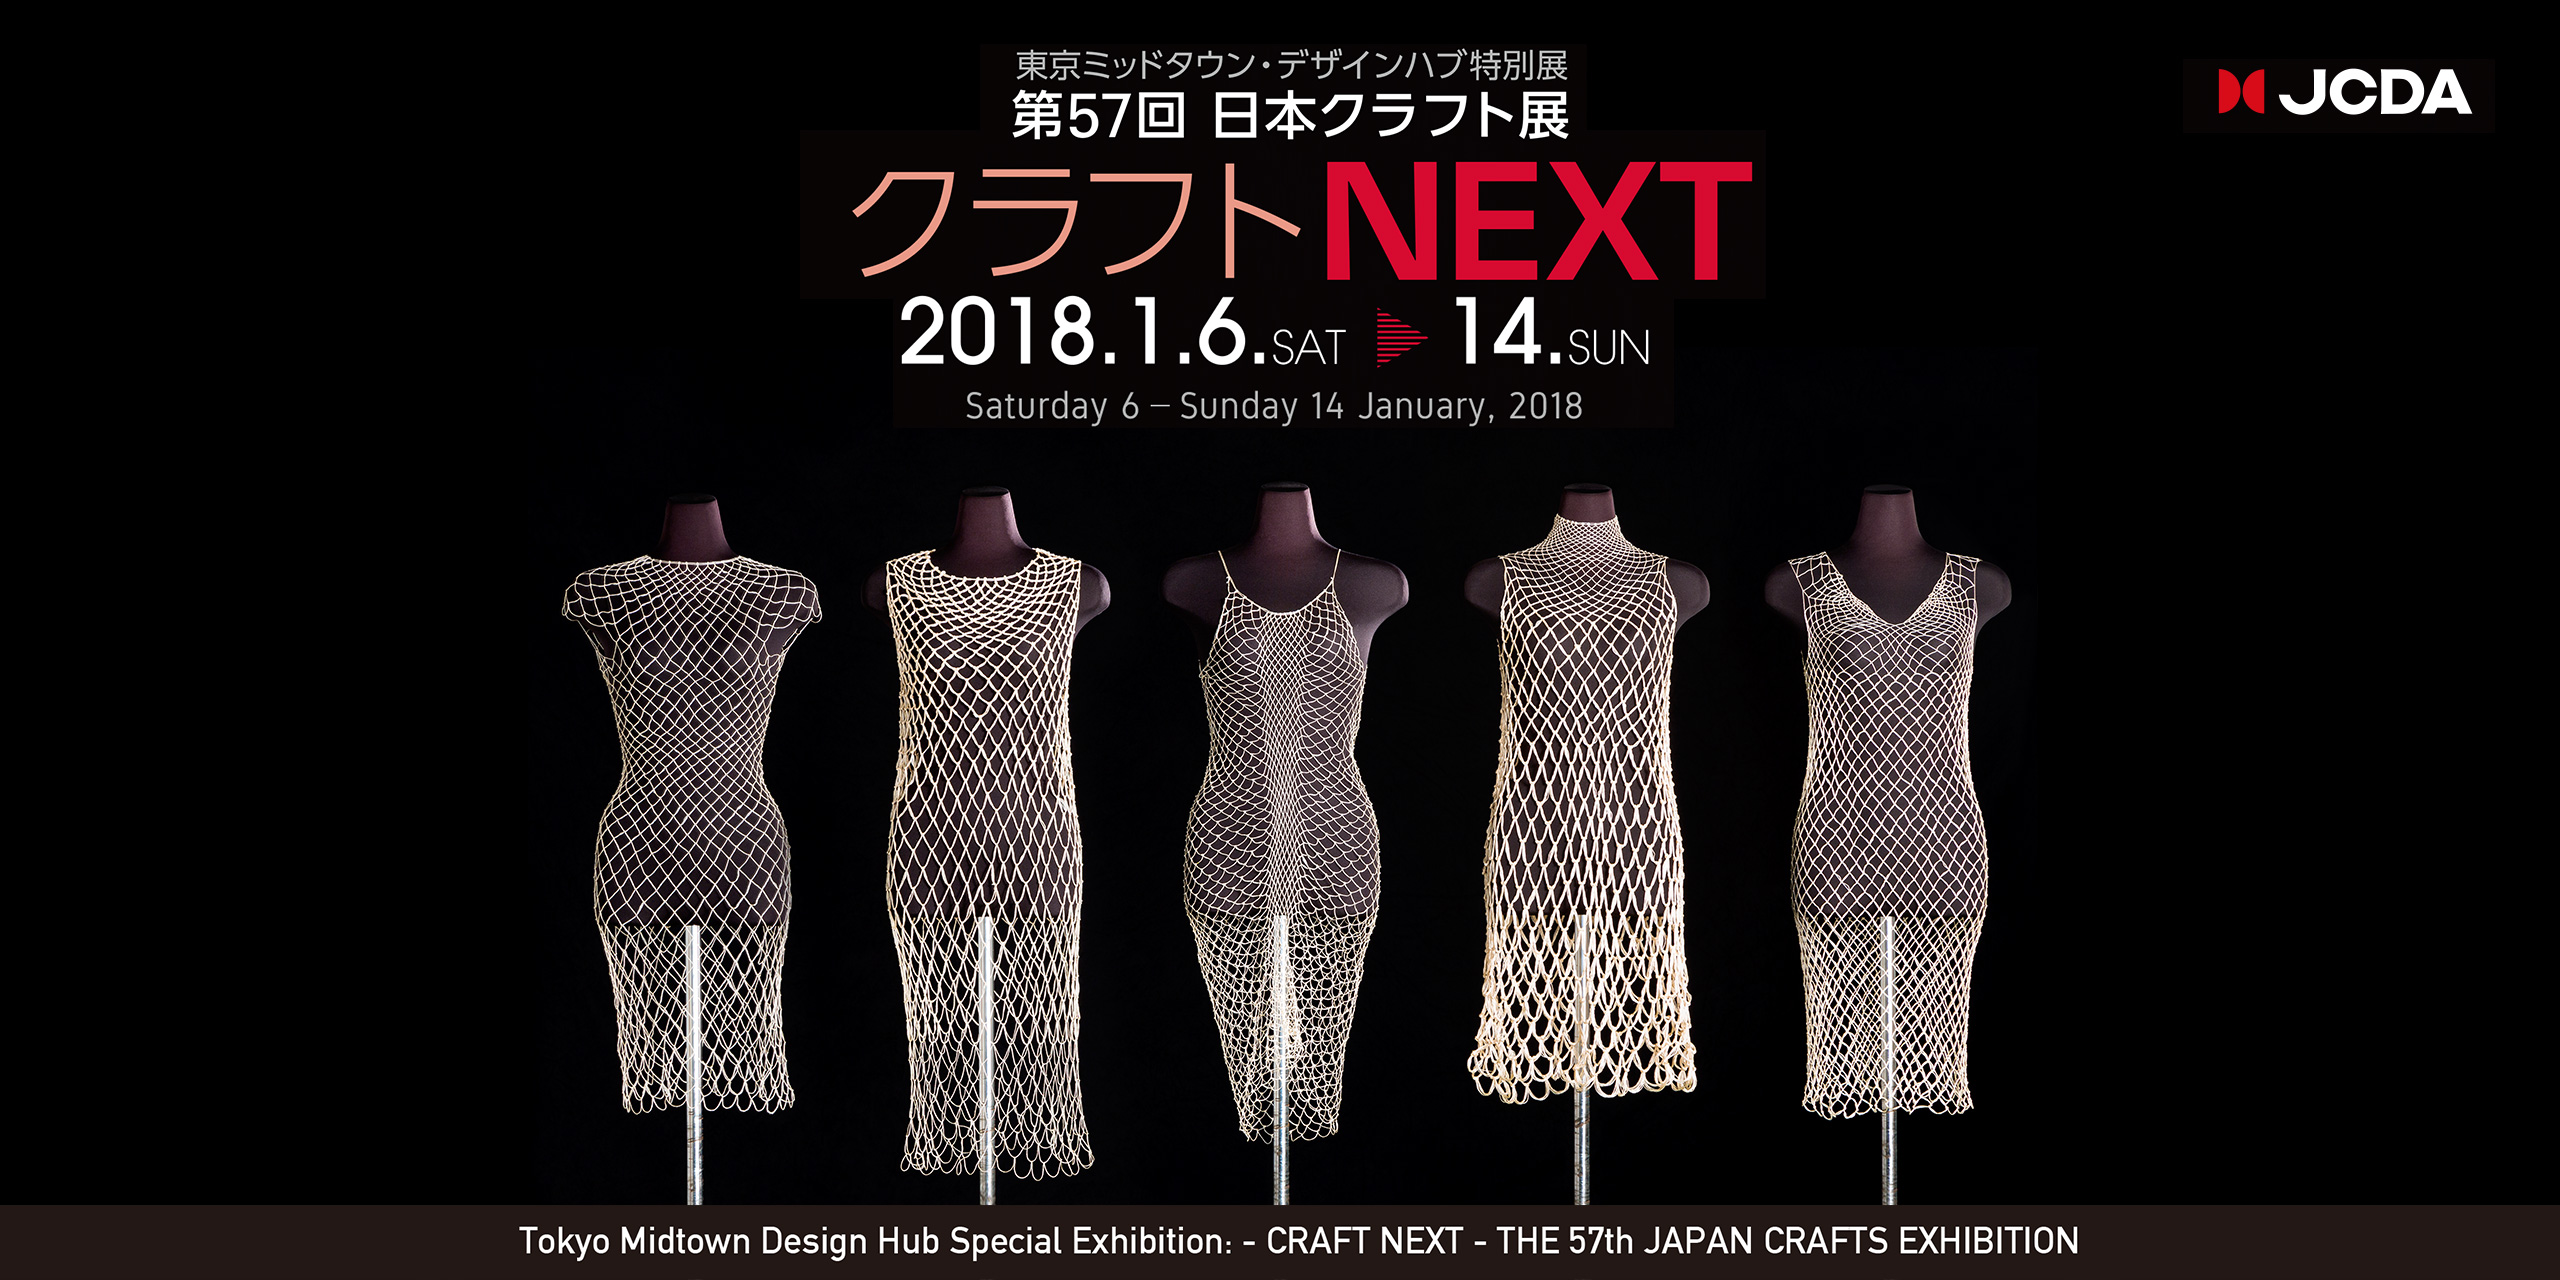 – CRAFT NEXT – THE 57th JAPAN CRAFTS EXHIBITION